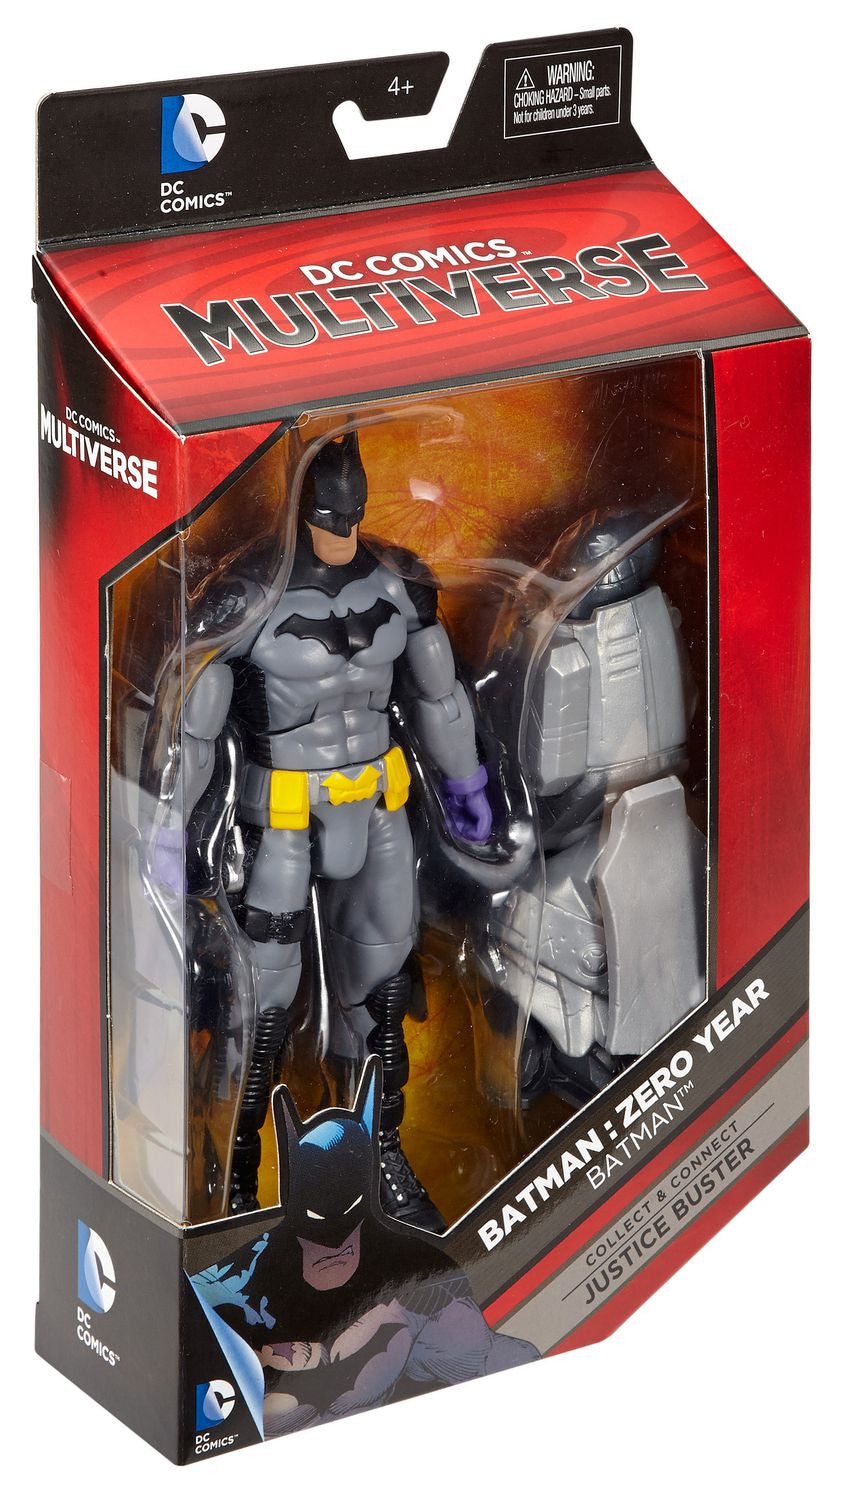 DC Comics Multiverse - Justice Buster BAF - Batman: Zero Year - Batman Action Figure (DKN38)